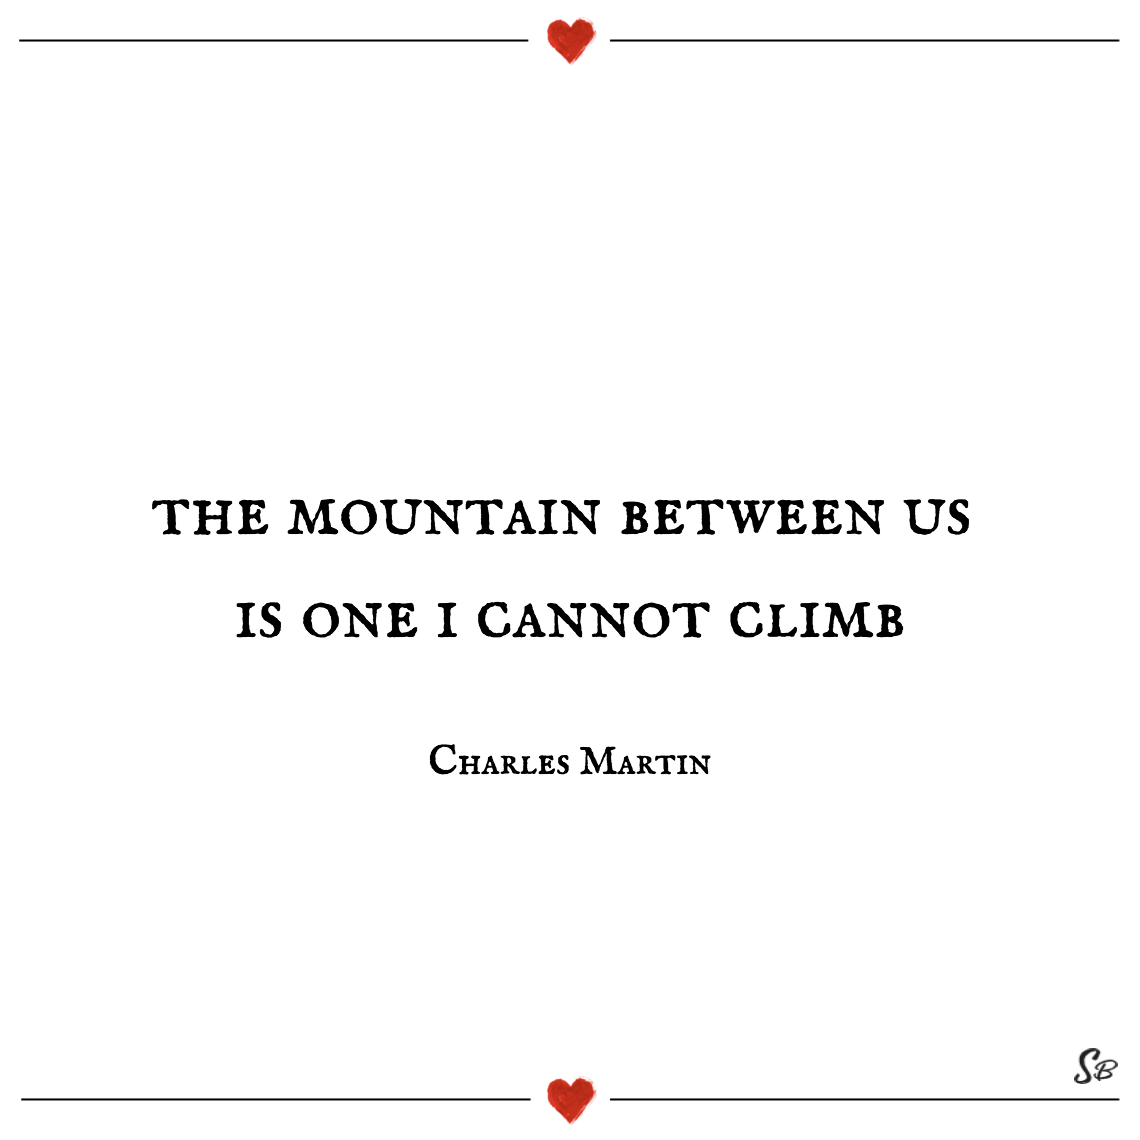 The mountain between us is one i cannot climb charles martin